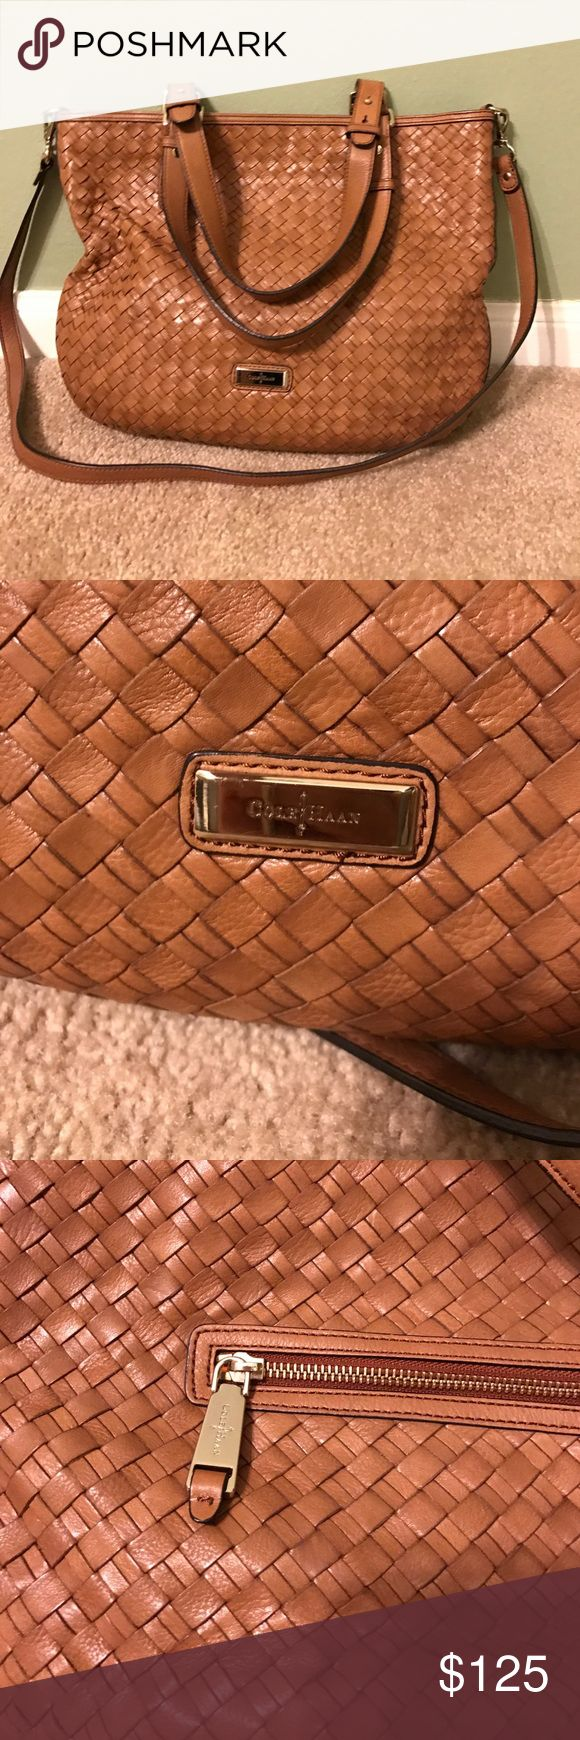 Cole Haan Genevieve open weave tote bag Cole haan genevieve brown open weave tote bag. Kept in excellent condition. It is a tote but can also be carried over the shoulder. Normal signs of use, kept in great condition. Make an offer! Cole Haan Bags Totes